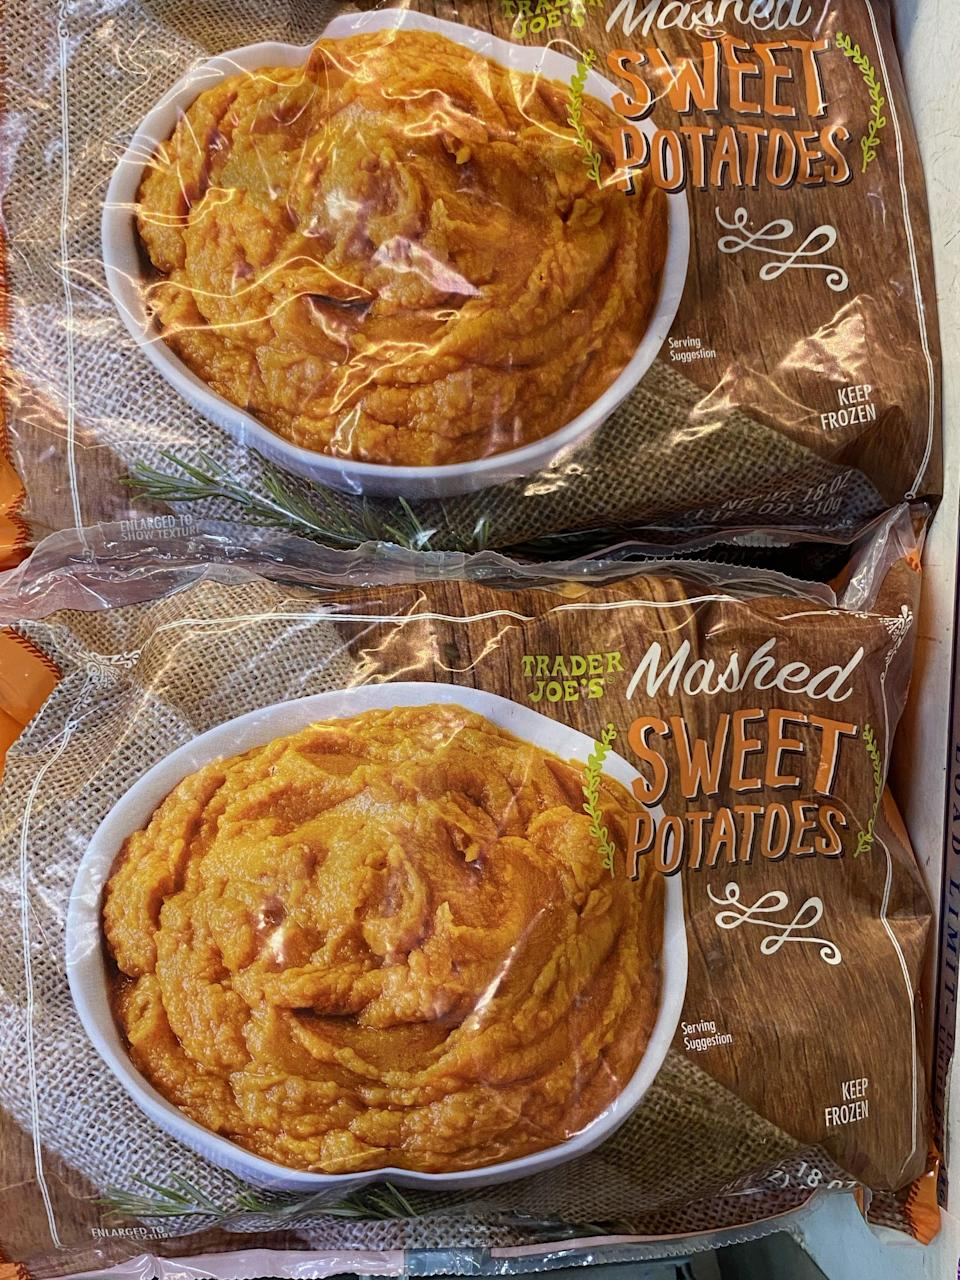 <p>OK, so this is not exactly pumpkin, but it's similar in flavor and a genius idea and timesaver. You'll love that this has only one ingredient - sweet potatoes!</p>